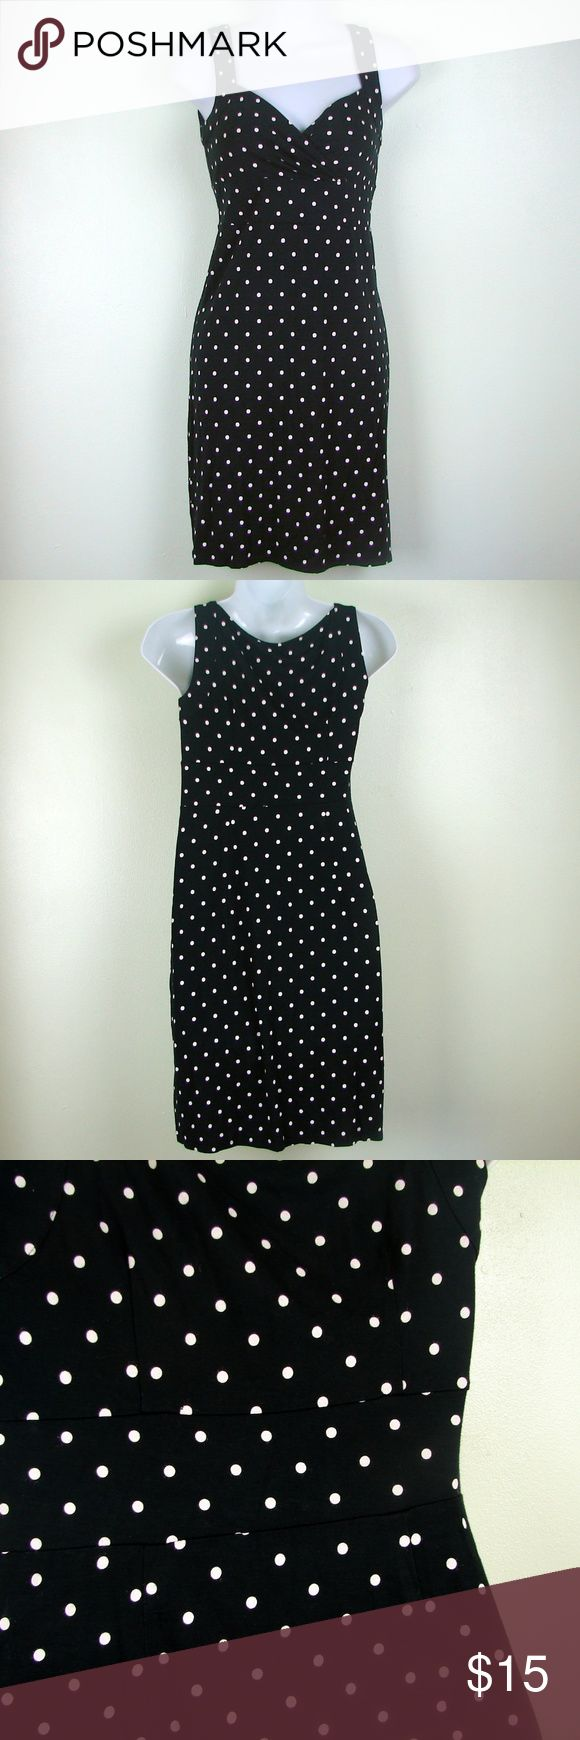 Ann Taylor Loft Petite polka dot bodycon dress Ann Taylor Loft Petite polka dot bodycon dress. Size zipper Waist 26 Chest 32-36  262 Ann Taylor Dresses